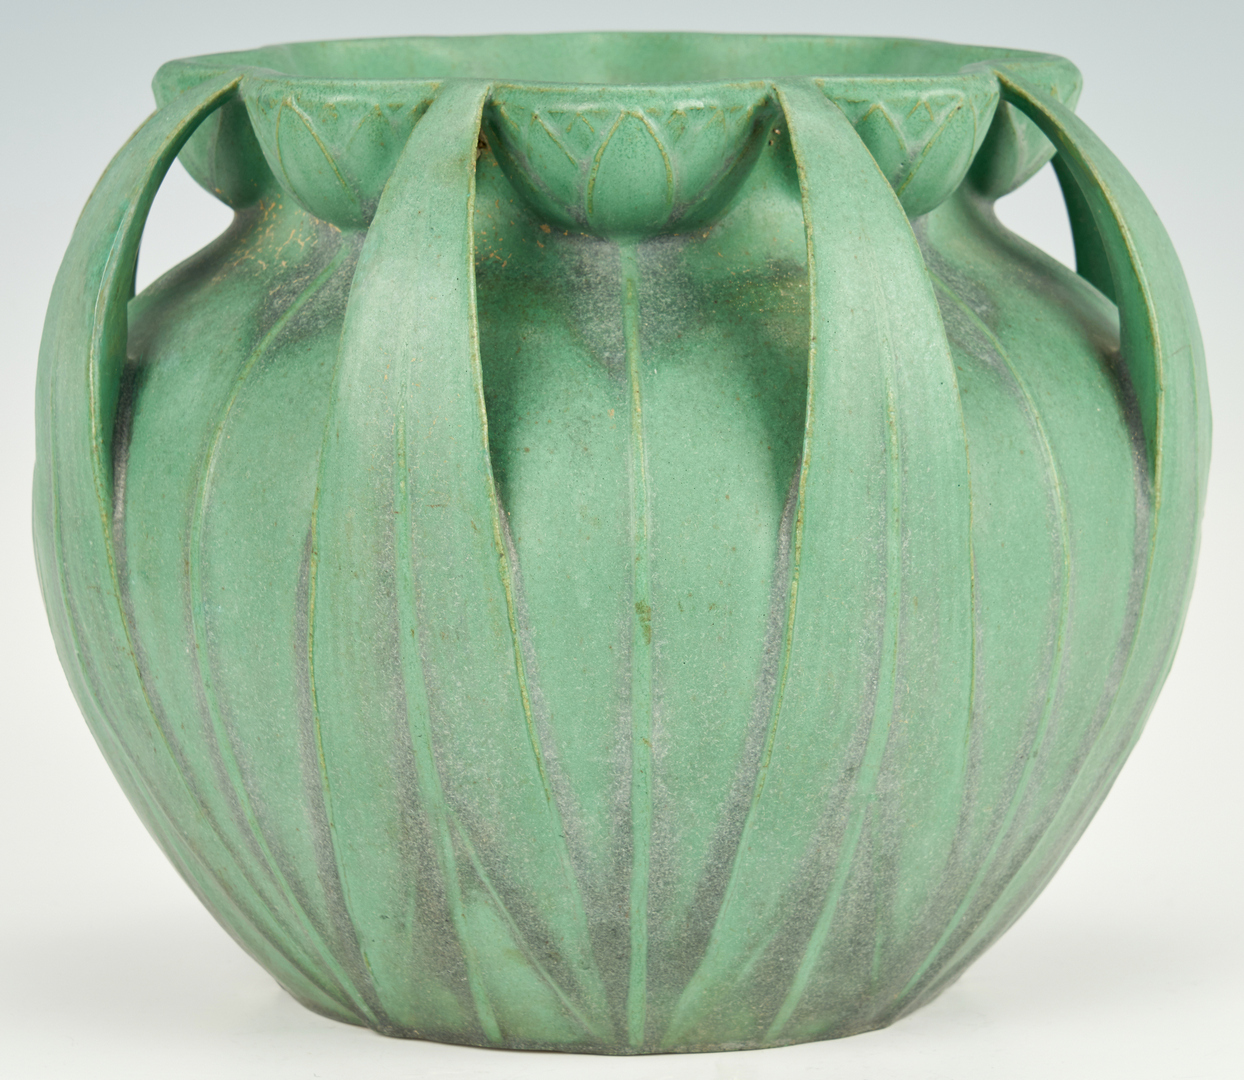 Lot 496: Large Teco Pottery Jardiniere, Model 106